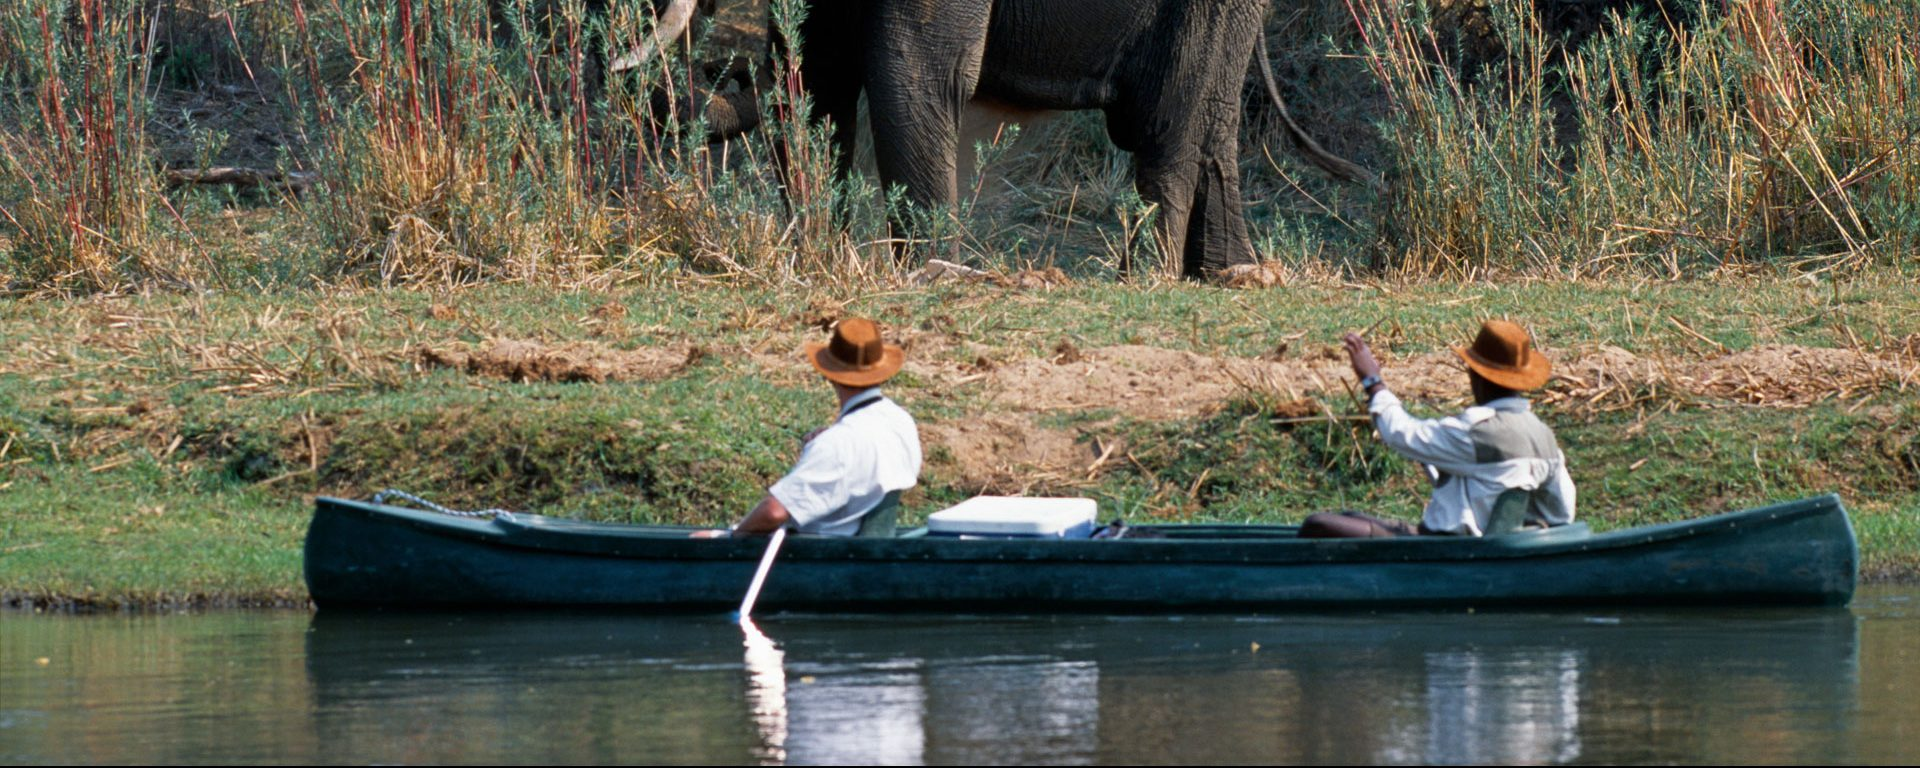 Canoe safari along the Chifungulu Channel, Zambia